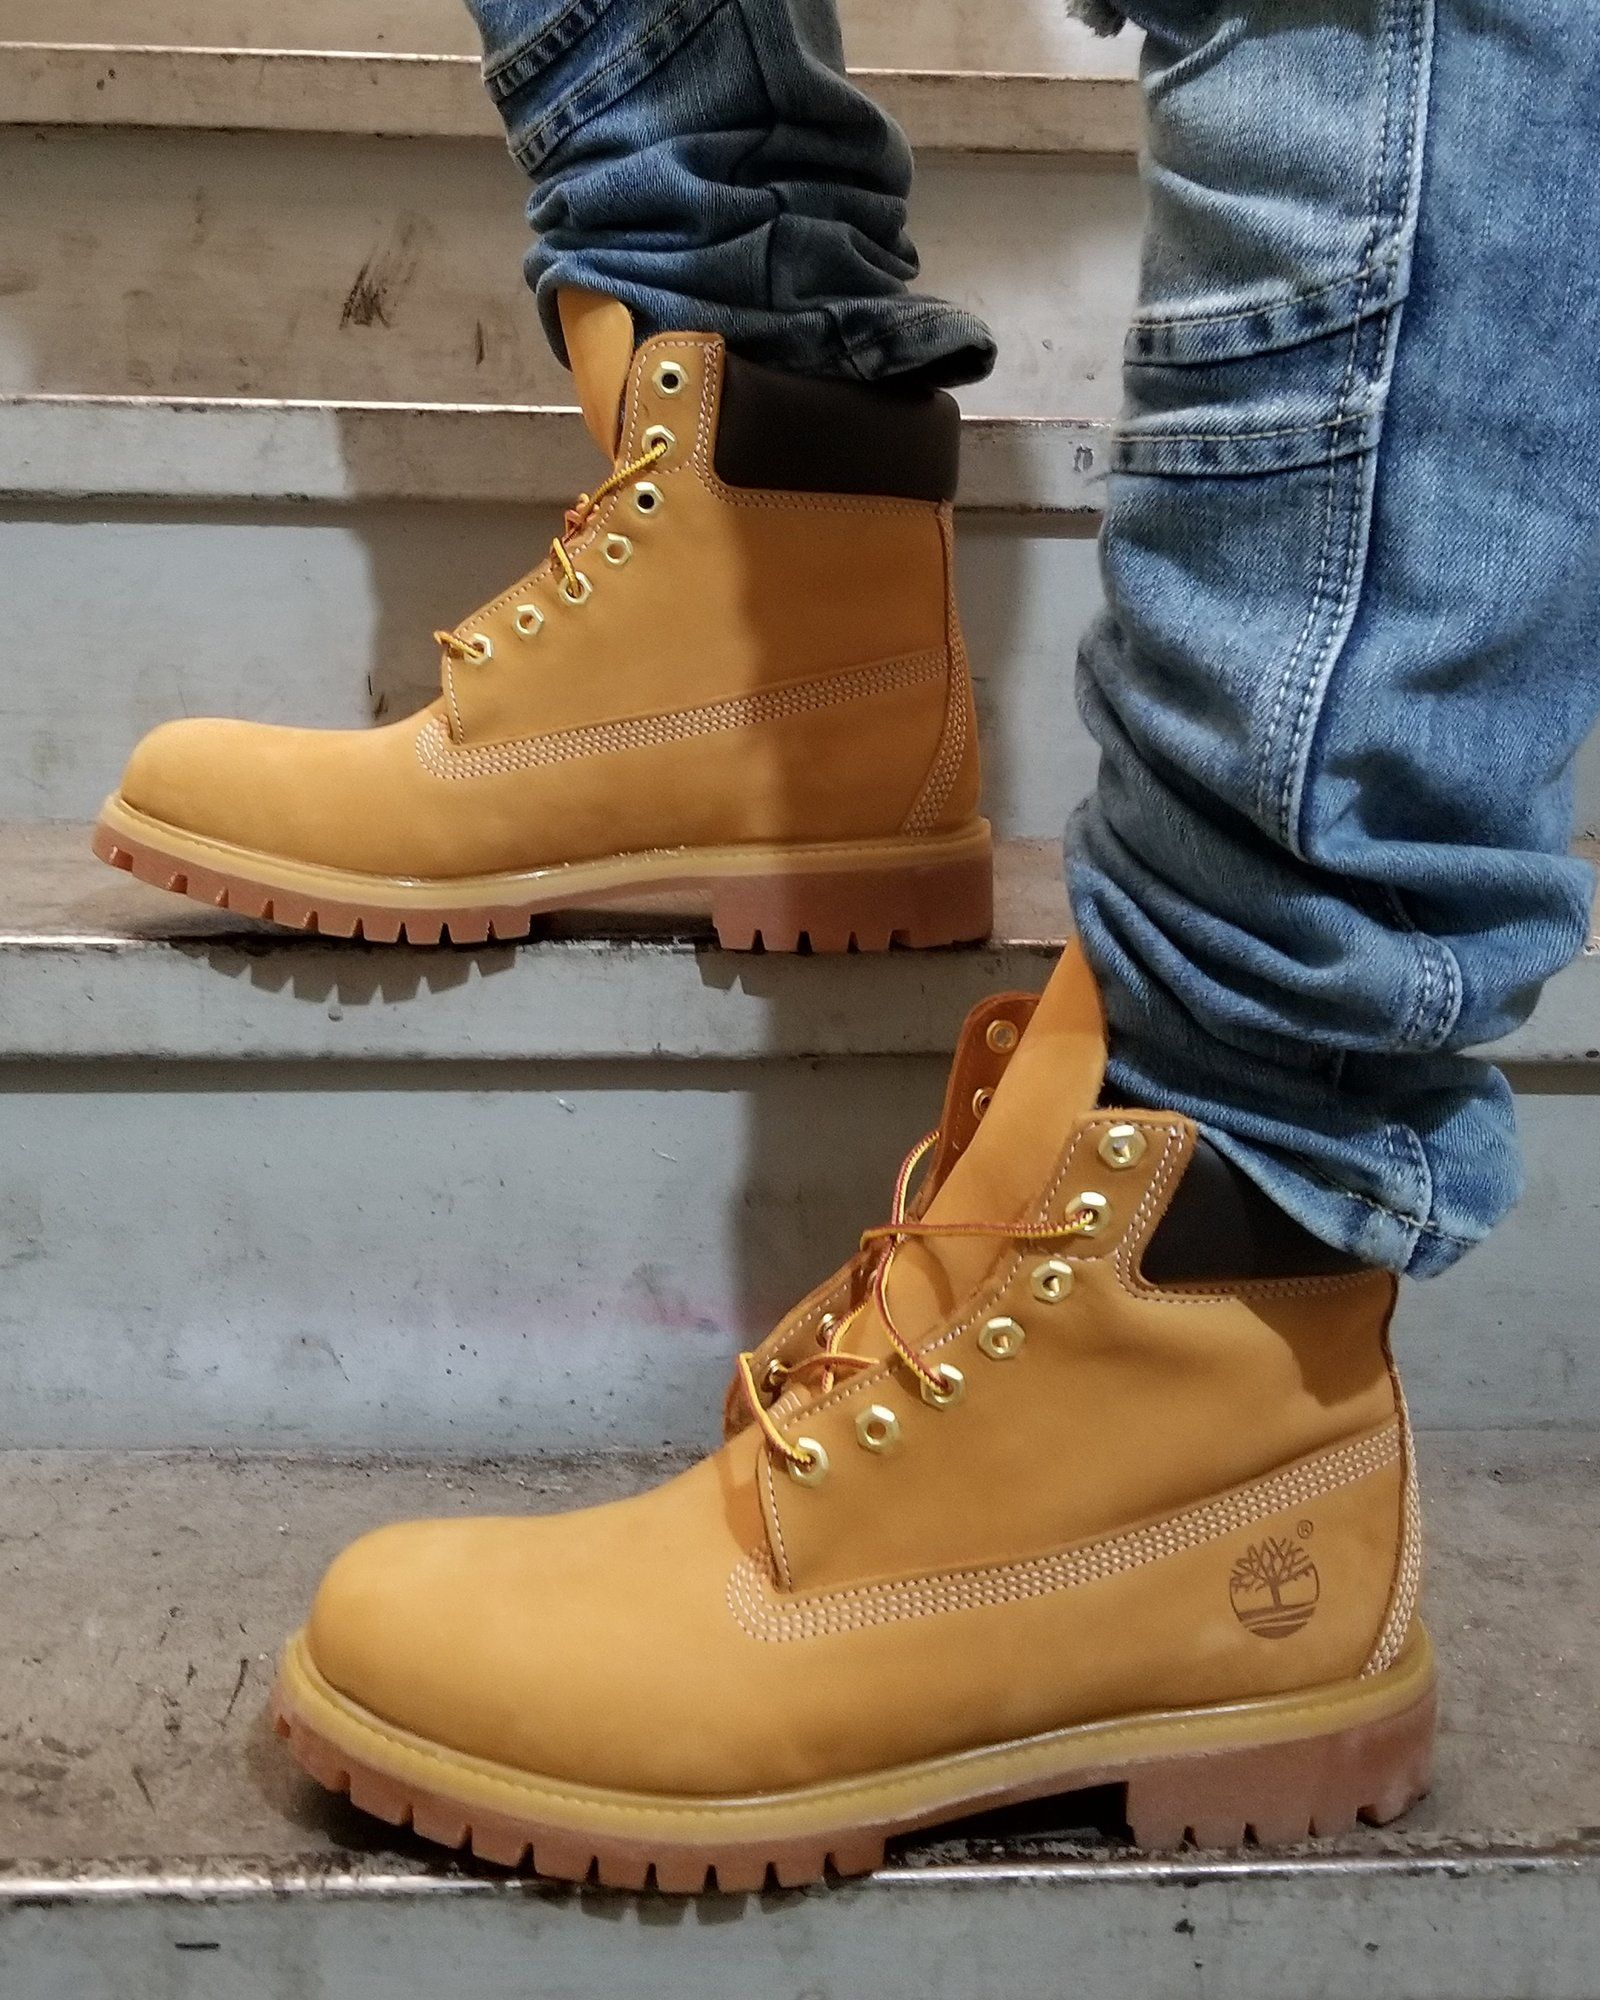 Timberland boots outfit mens